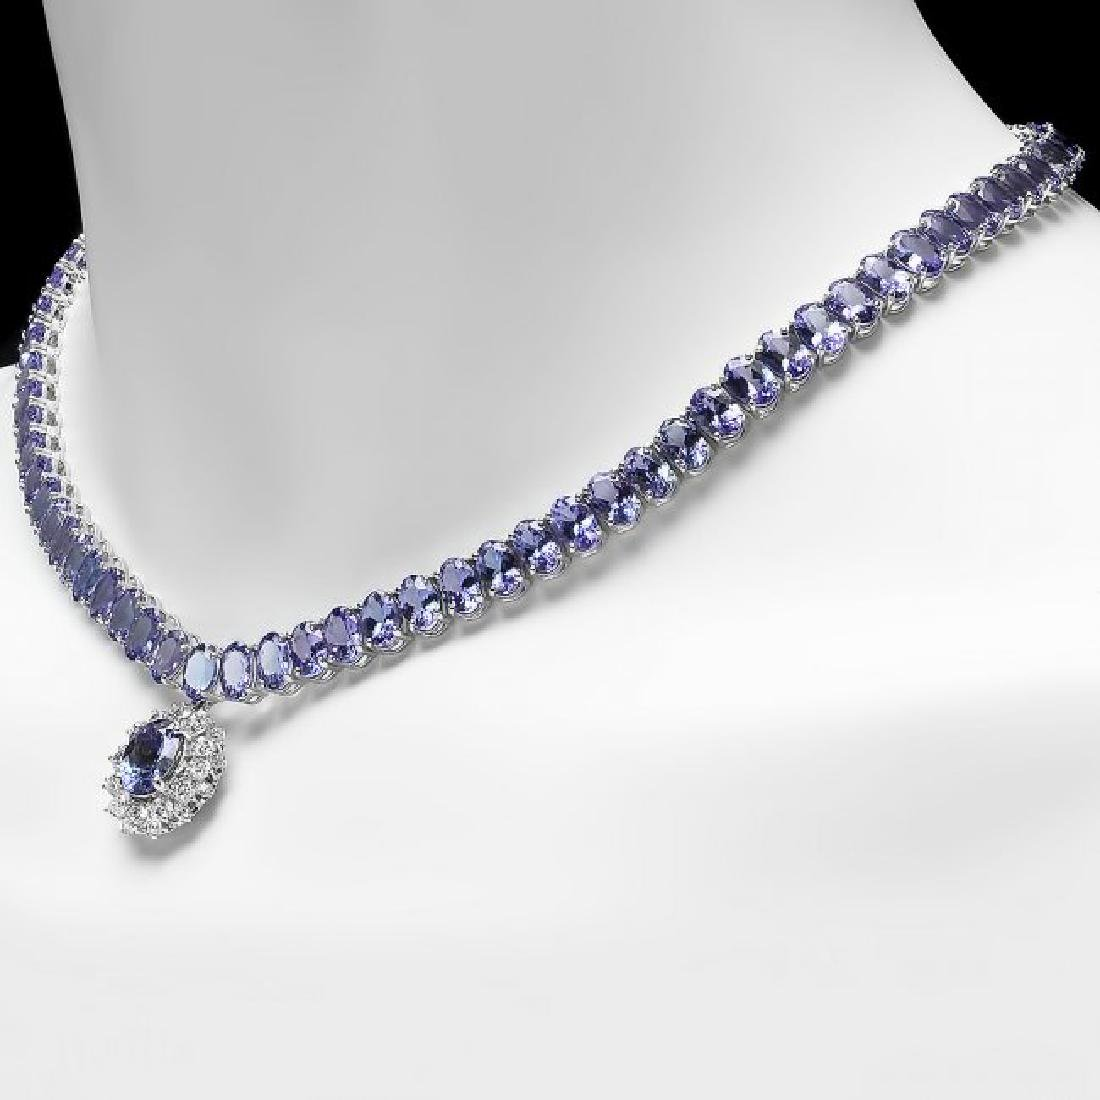 14k Gold 64.5ct Tanzanite 1.60ct Diamond Necklace - 5